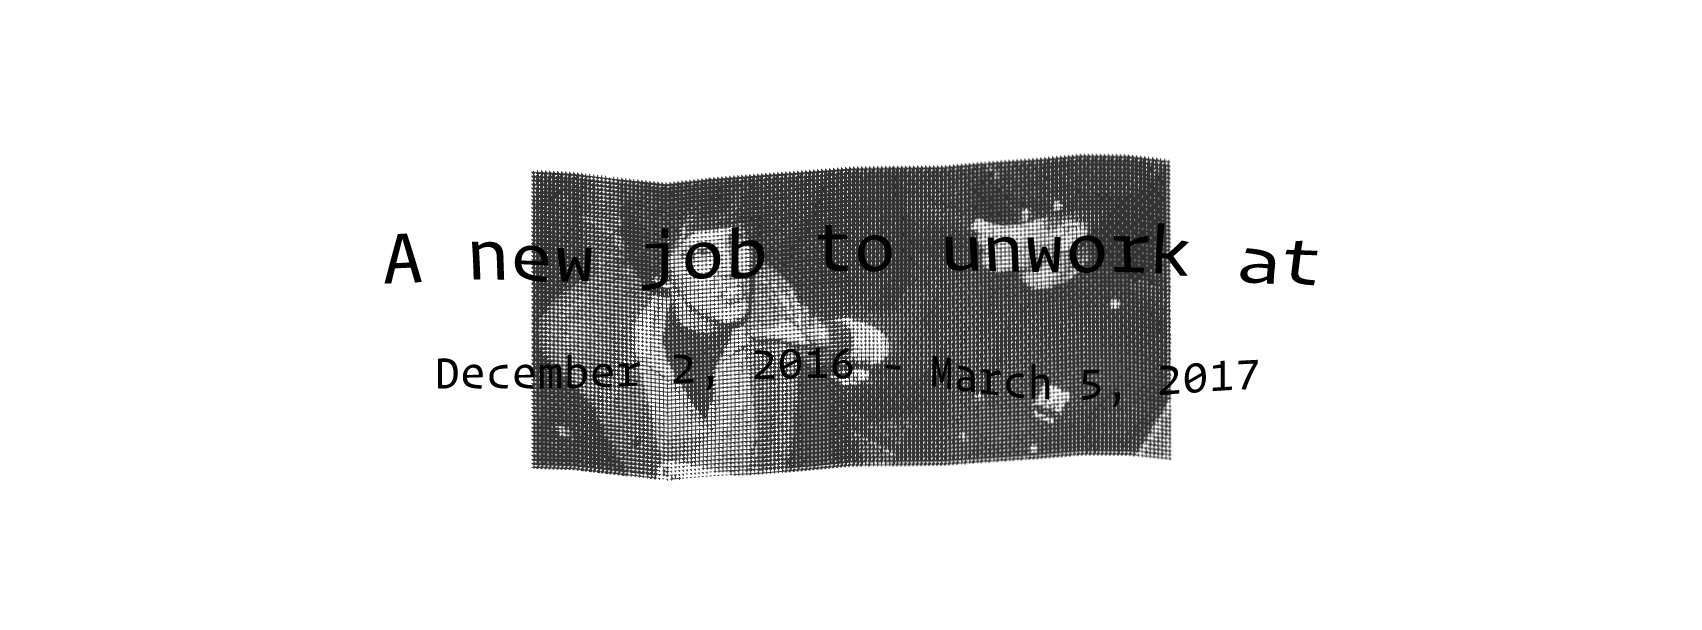 A new job to unwork at text set on top of black and white photo of Valerie Solanas.